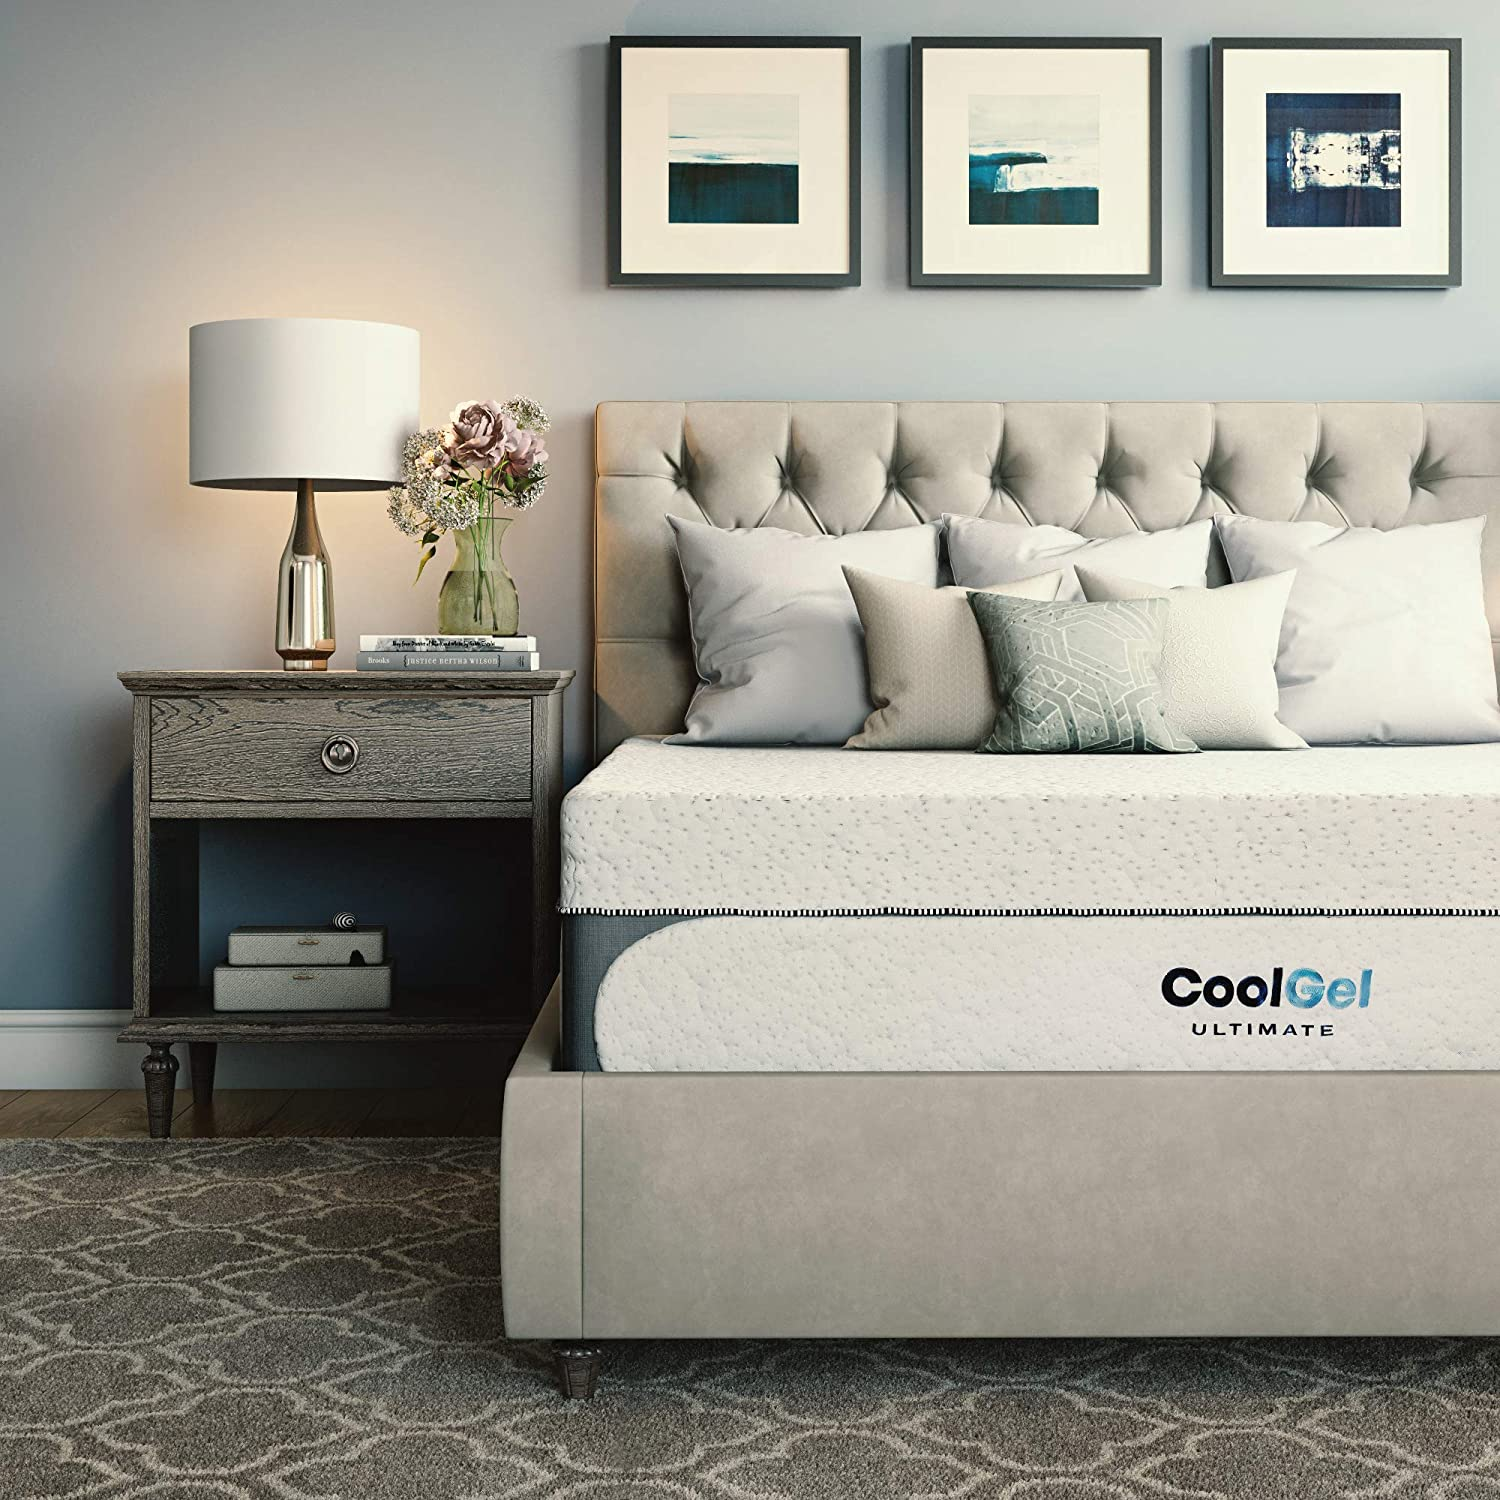 Classic Brands Cool Gel 1.0 Ultimate Gel Memory Foam 14-Inch Mattress with BONUS 2 Pillows, White, Queen